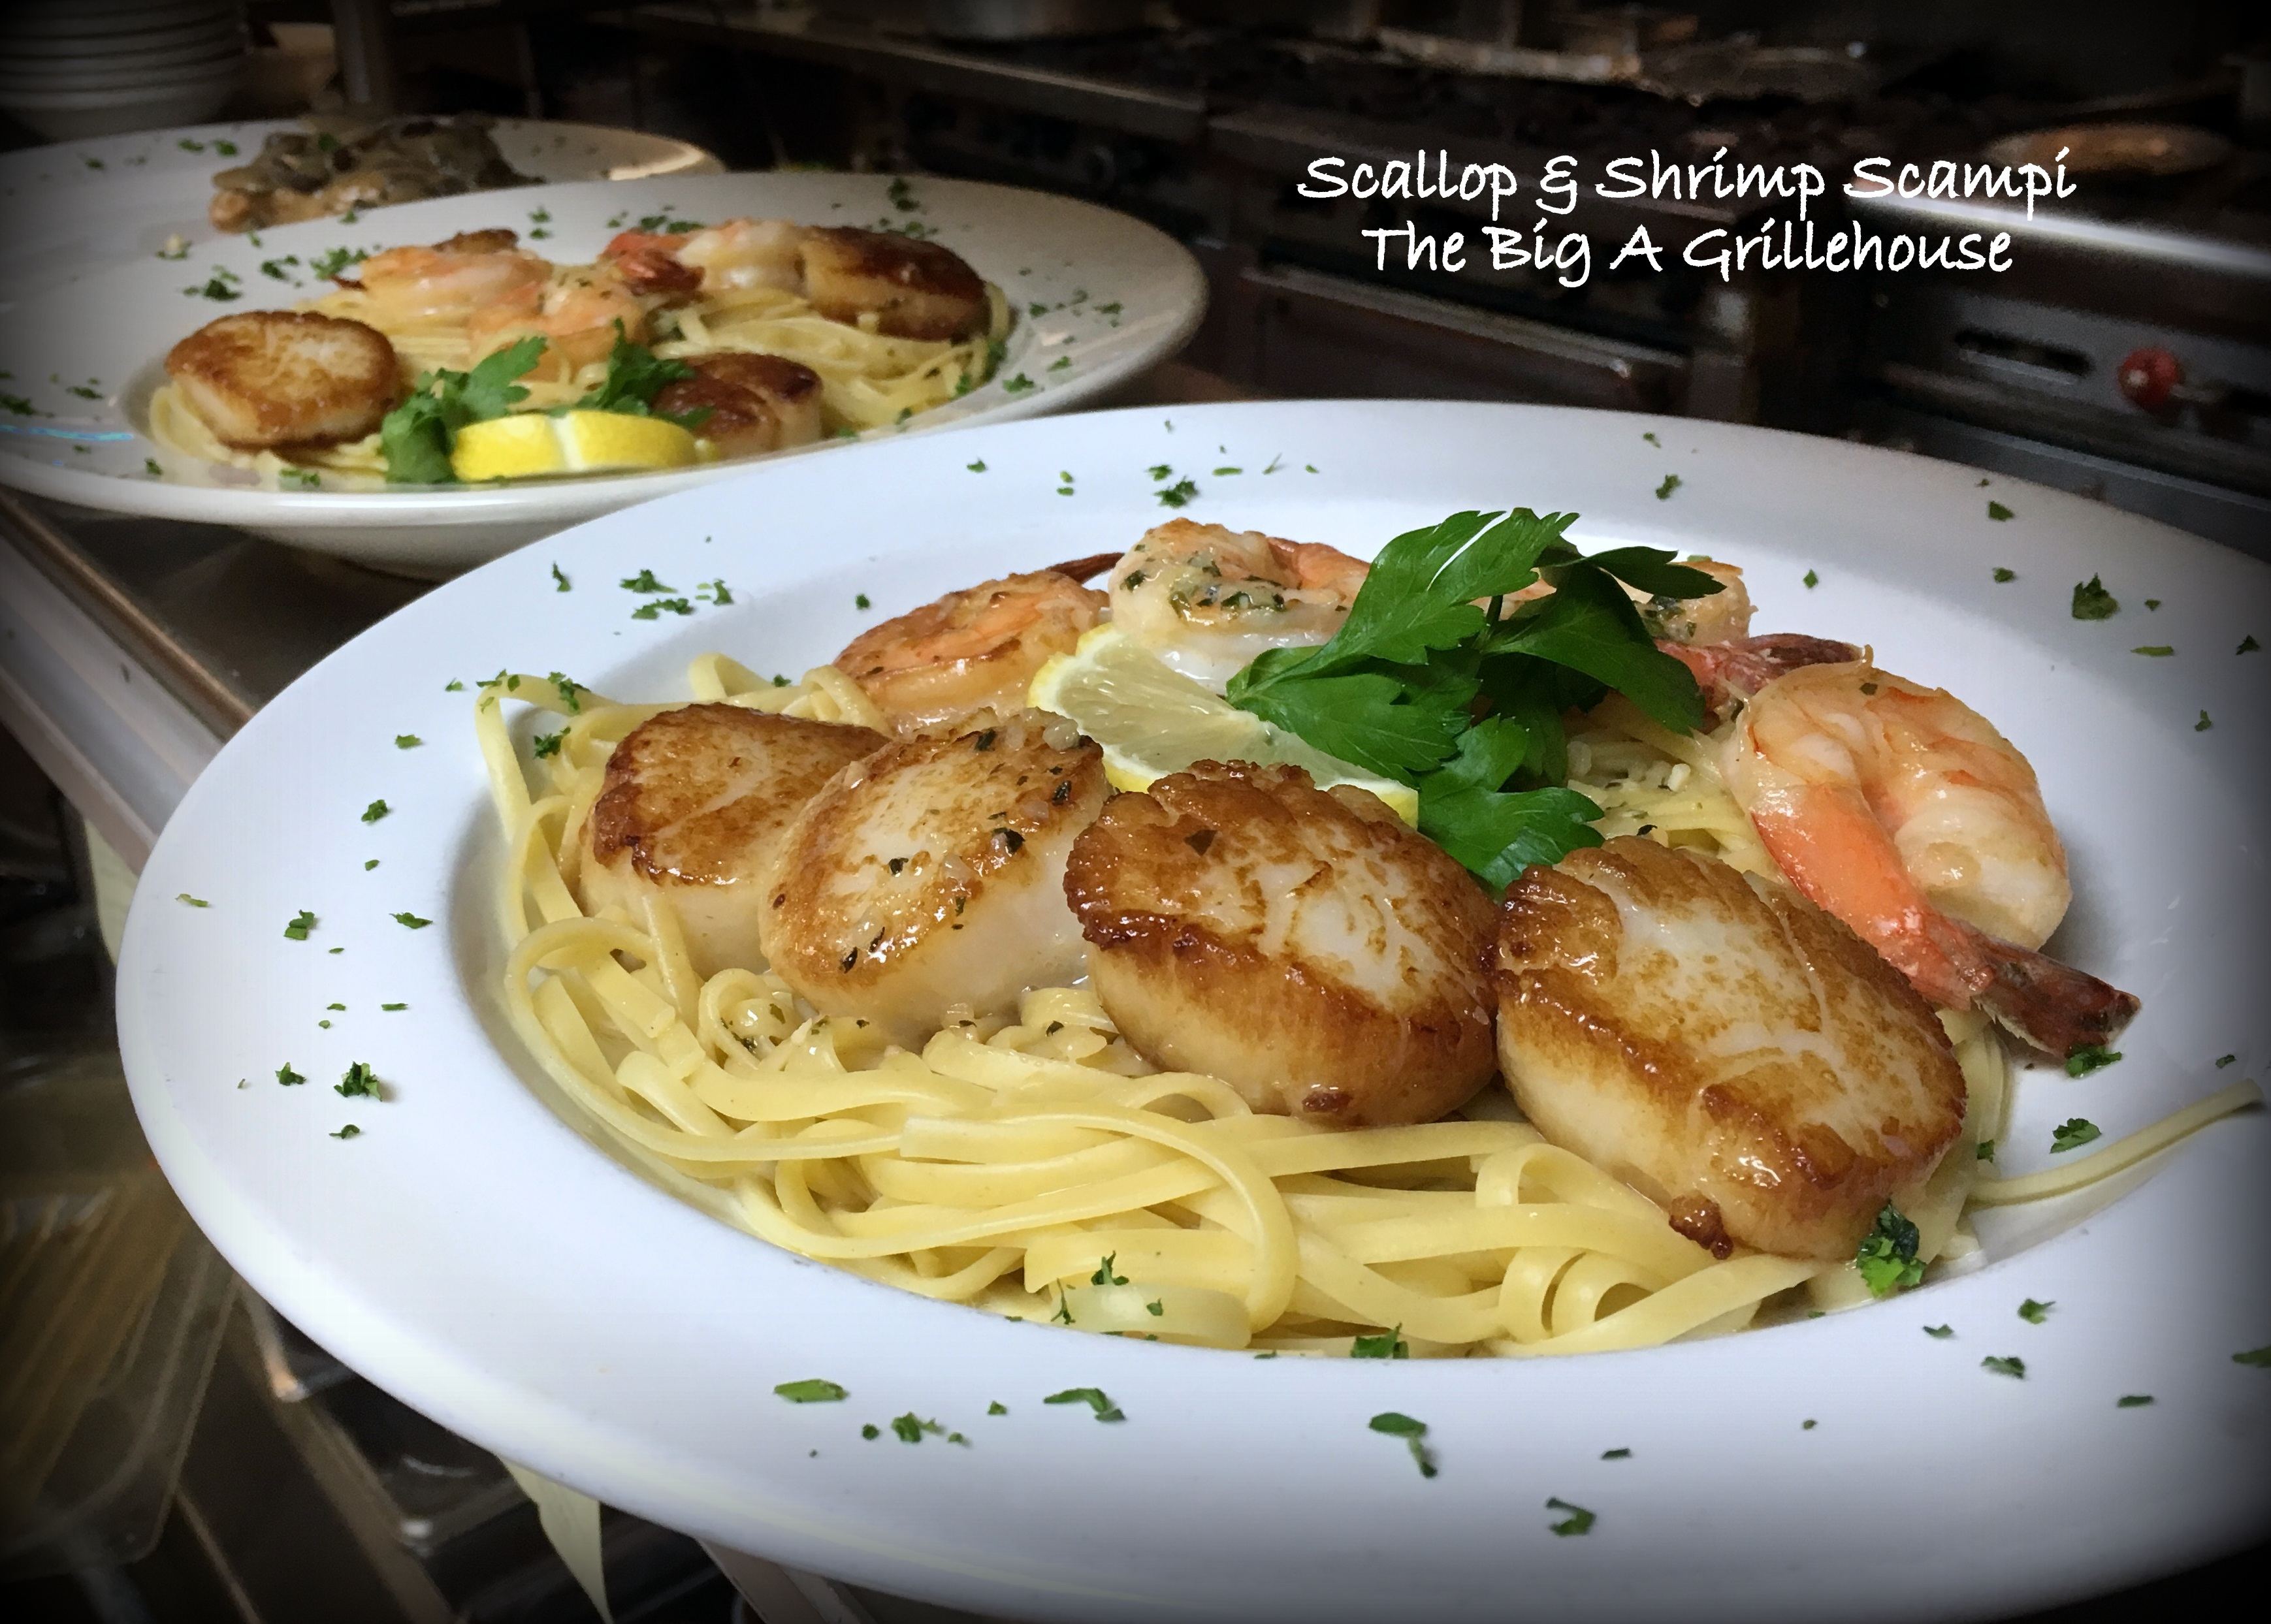 IMG_0573_Scallop & Shrimp_1